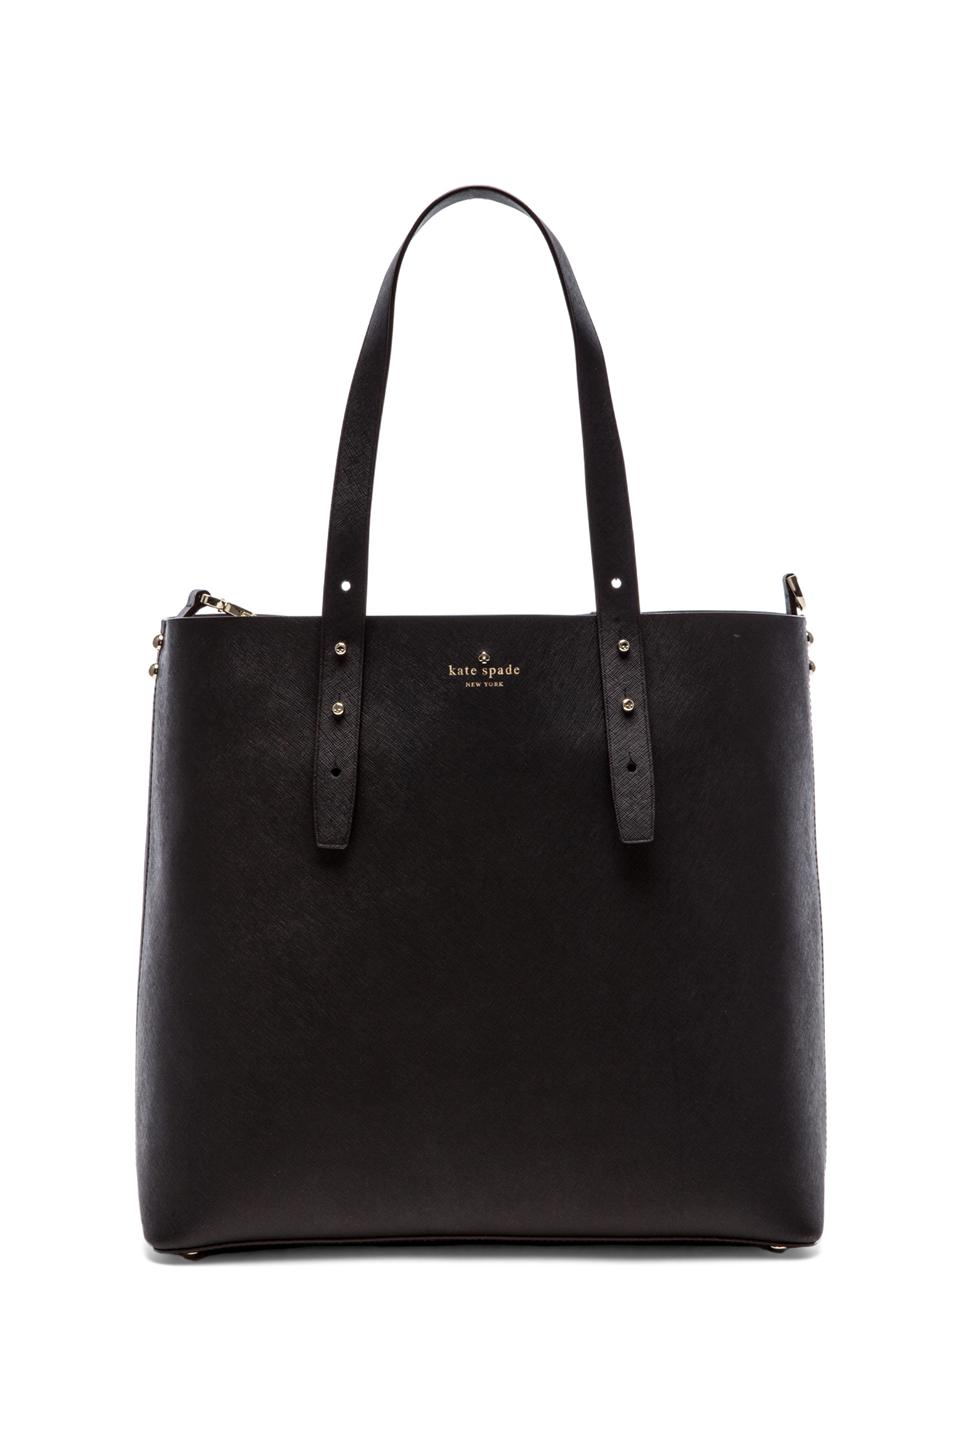 kate spade new york Lewis Tote in Black